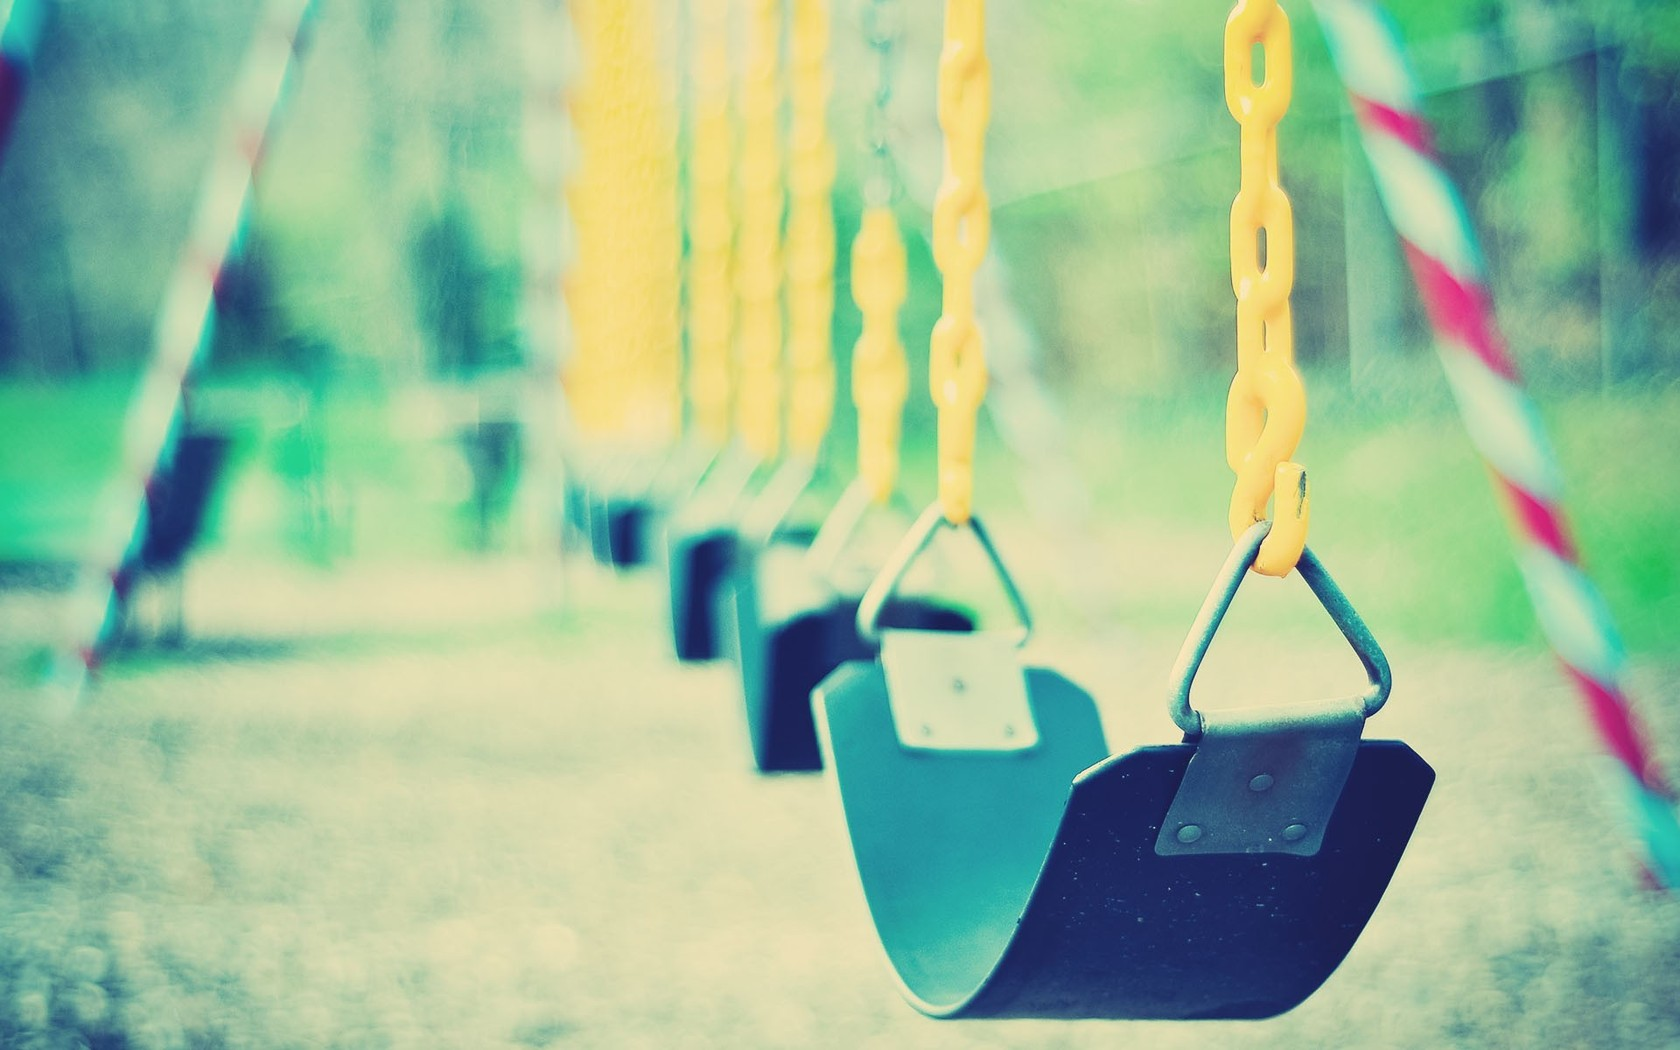 Swing Wallpaper · Swing Wallpaper · Swing Wallpaper ...